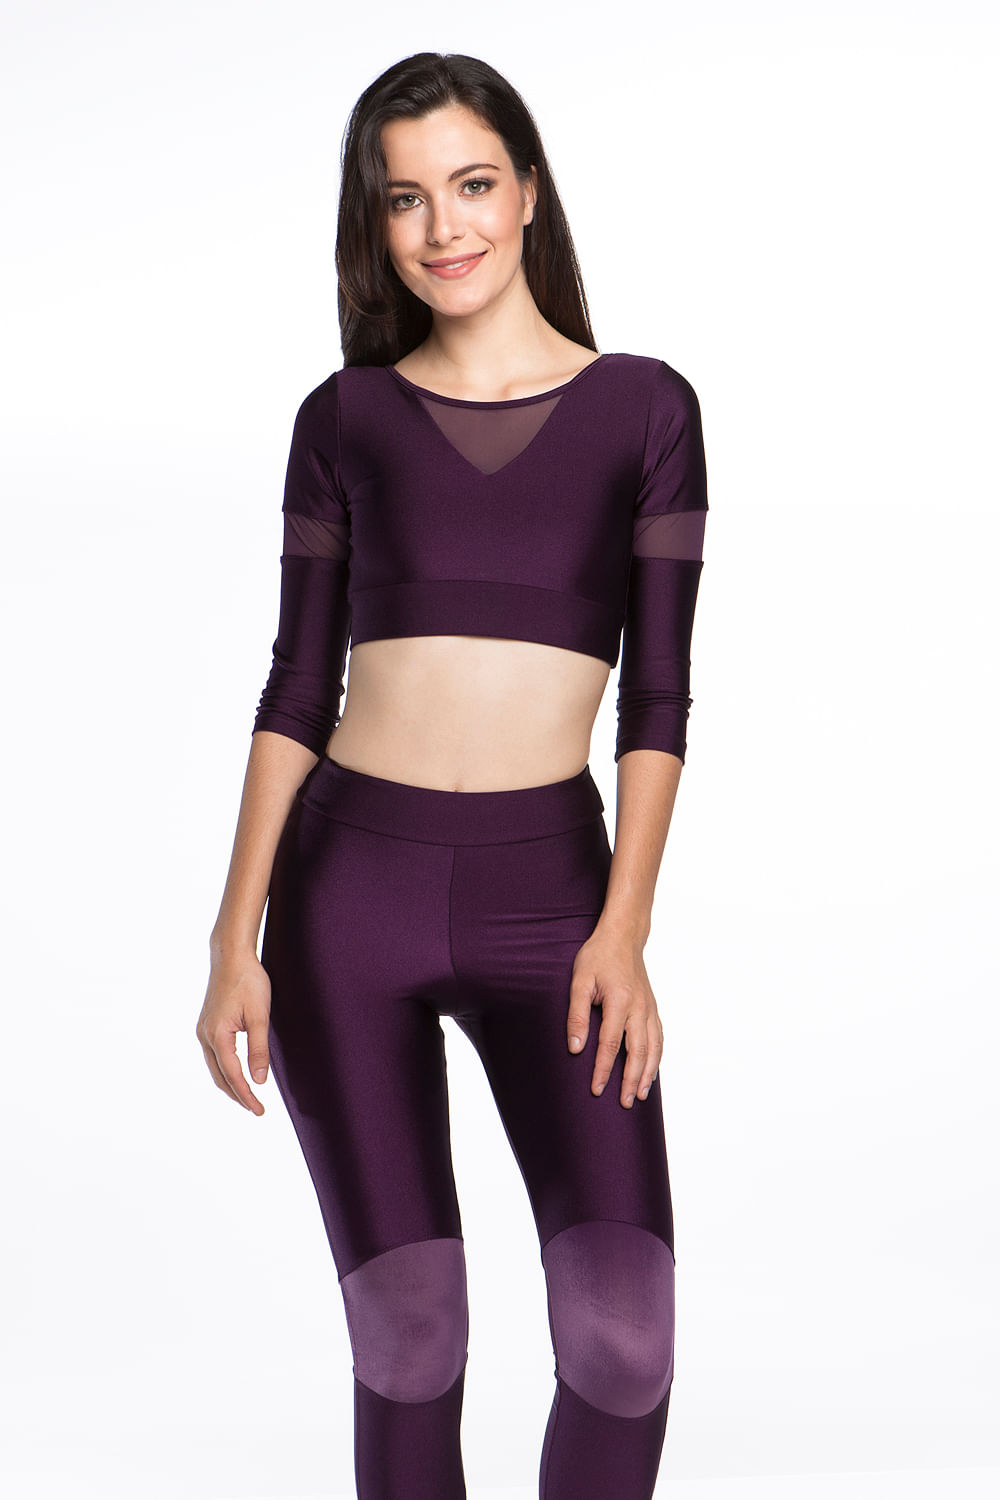 2974---Top-Fitness-Cropped-V-Tule----Roxo-Escuro--1-